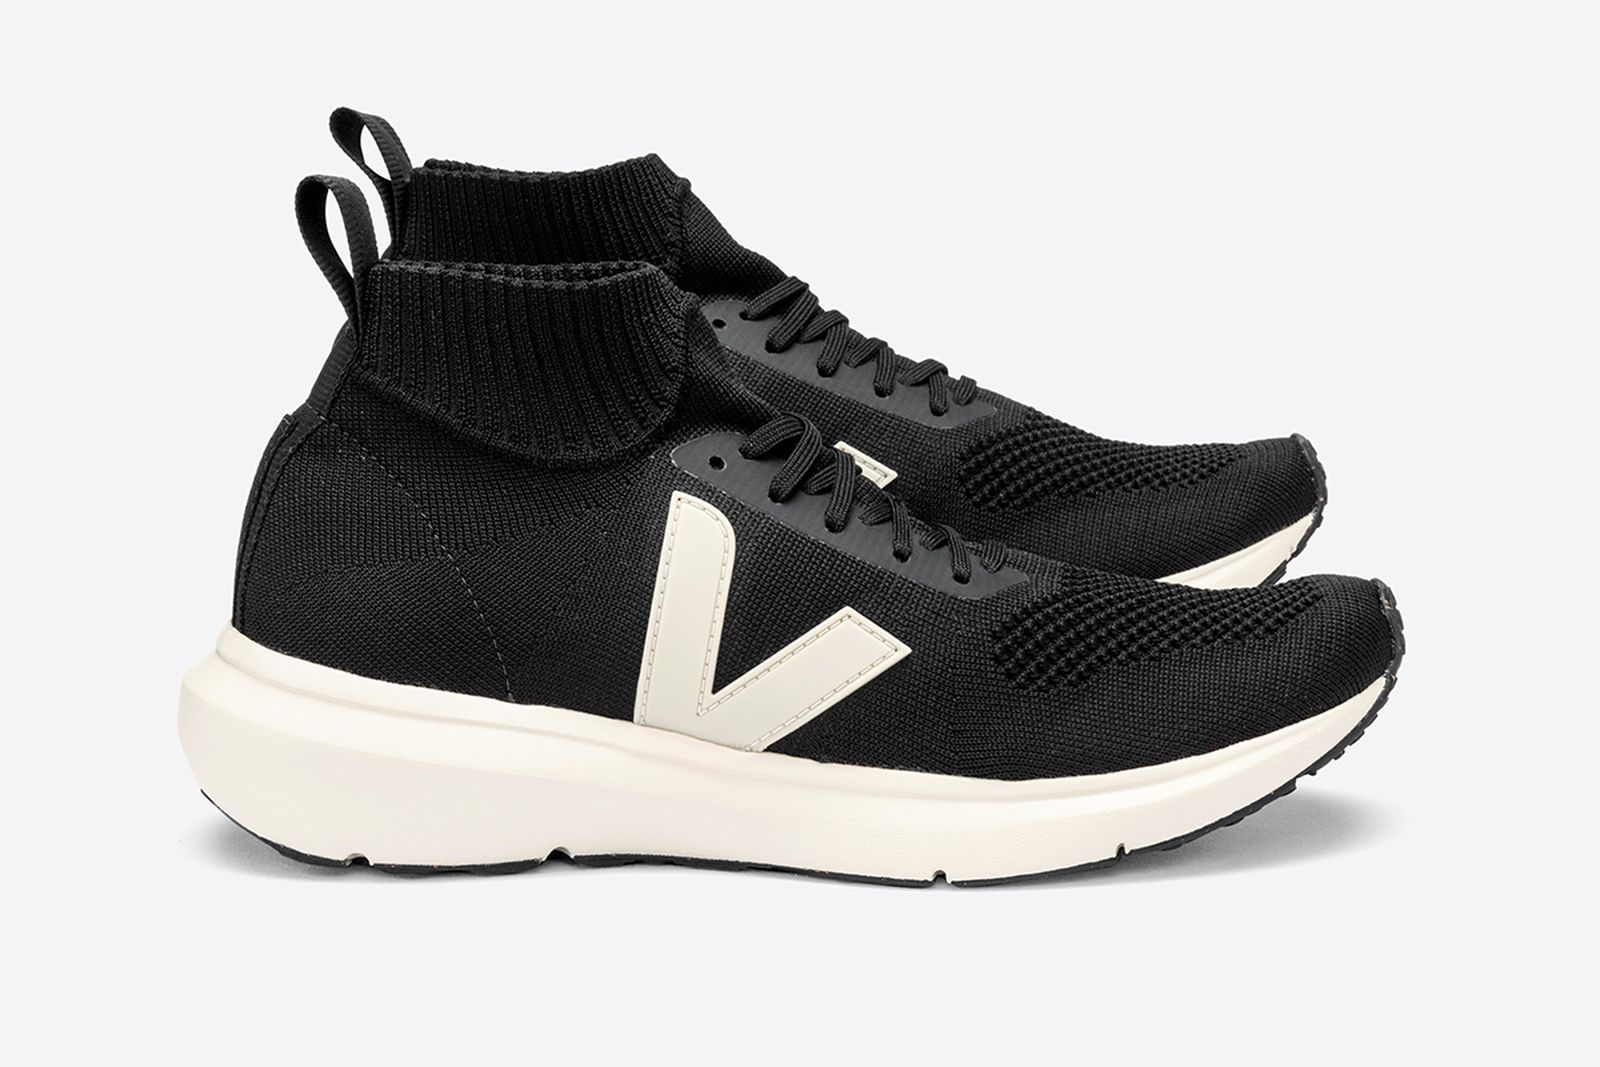 rick-owens-veja-fall-2020-release-date-price-05